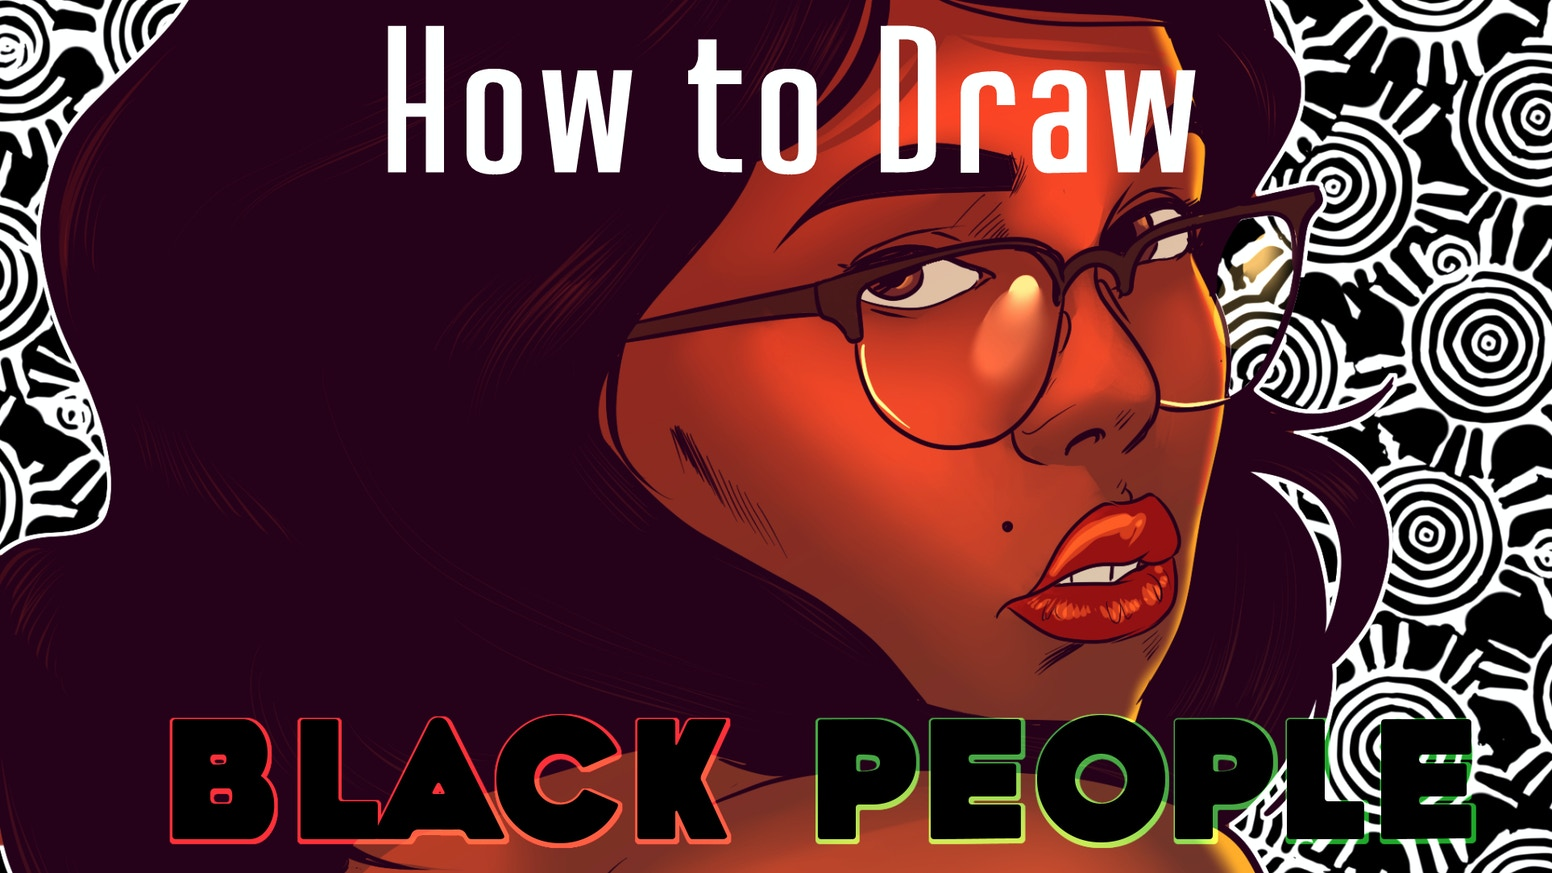 An instructional book on how to draw black people that covers phenotype, body diversity, costuming and cultural identity for artists.